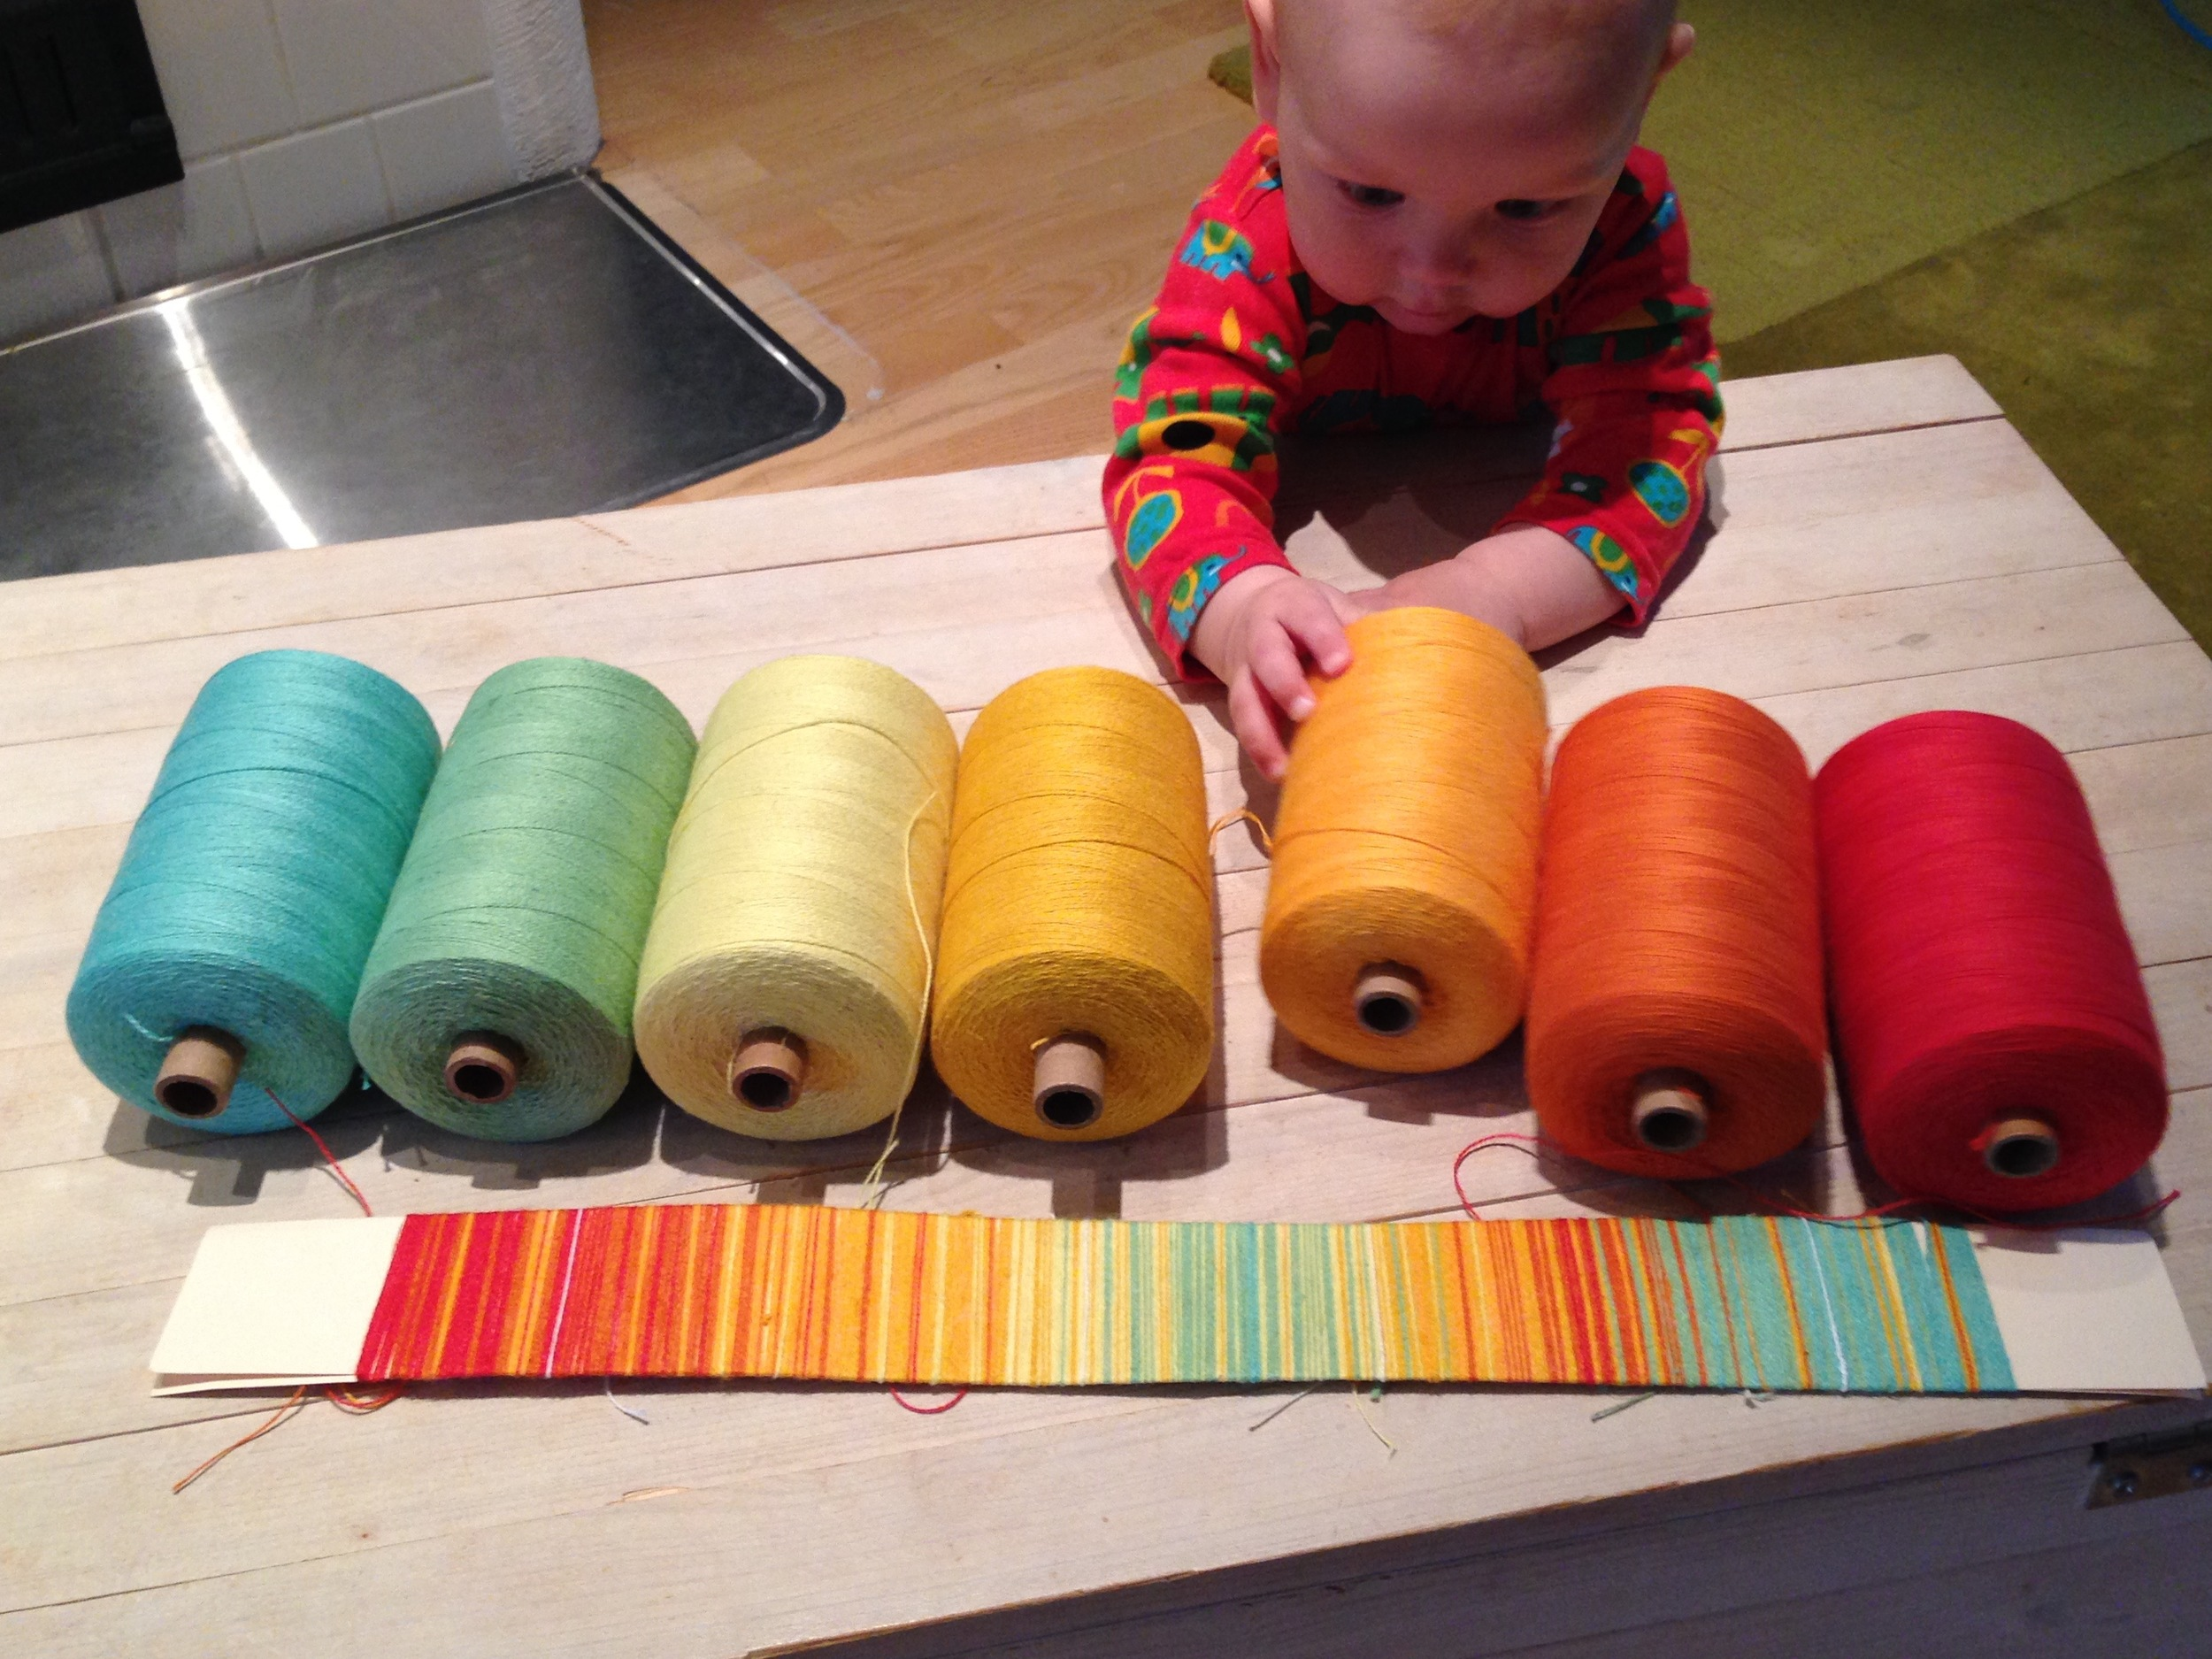 The Small Kid inspecting my colour choices.